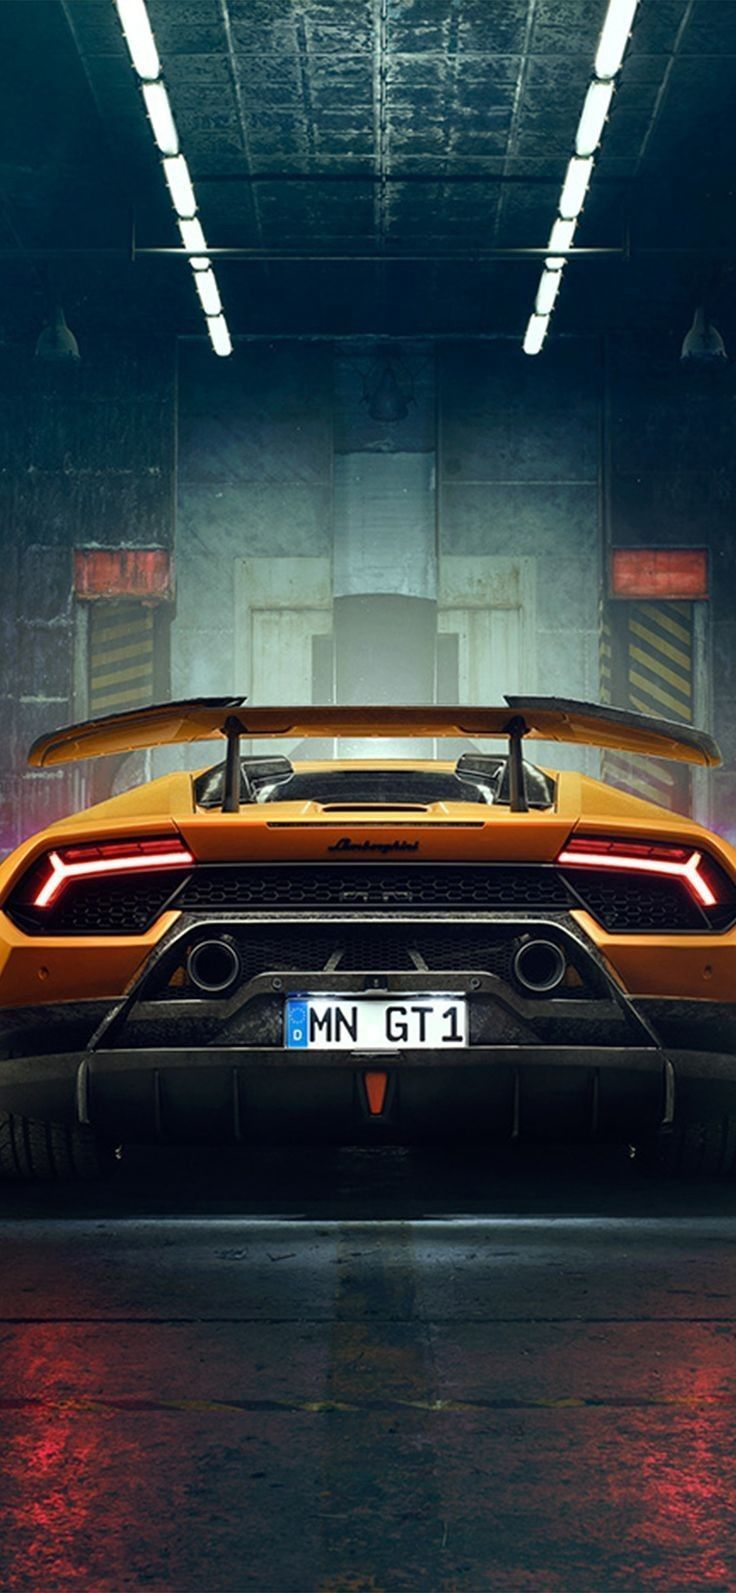 What Can Be Conceived Can Be Created Click To Be Inspired Supercar Cars Luxury Luxu Lamborghini Cars Lamborghini Wallpaper Iphone Car Iphone Wallpaper